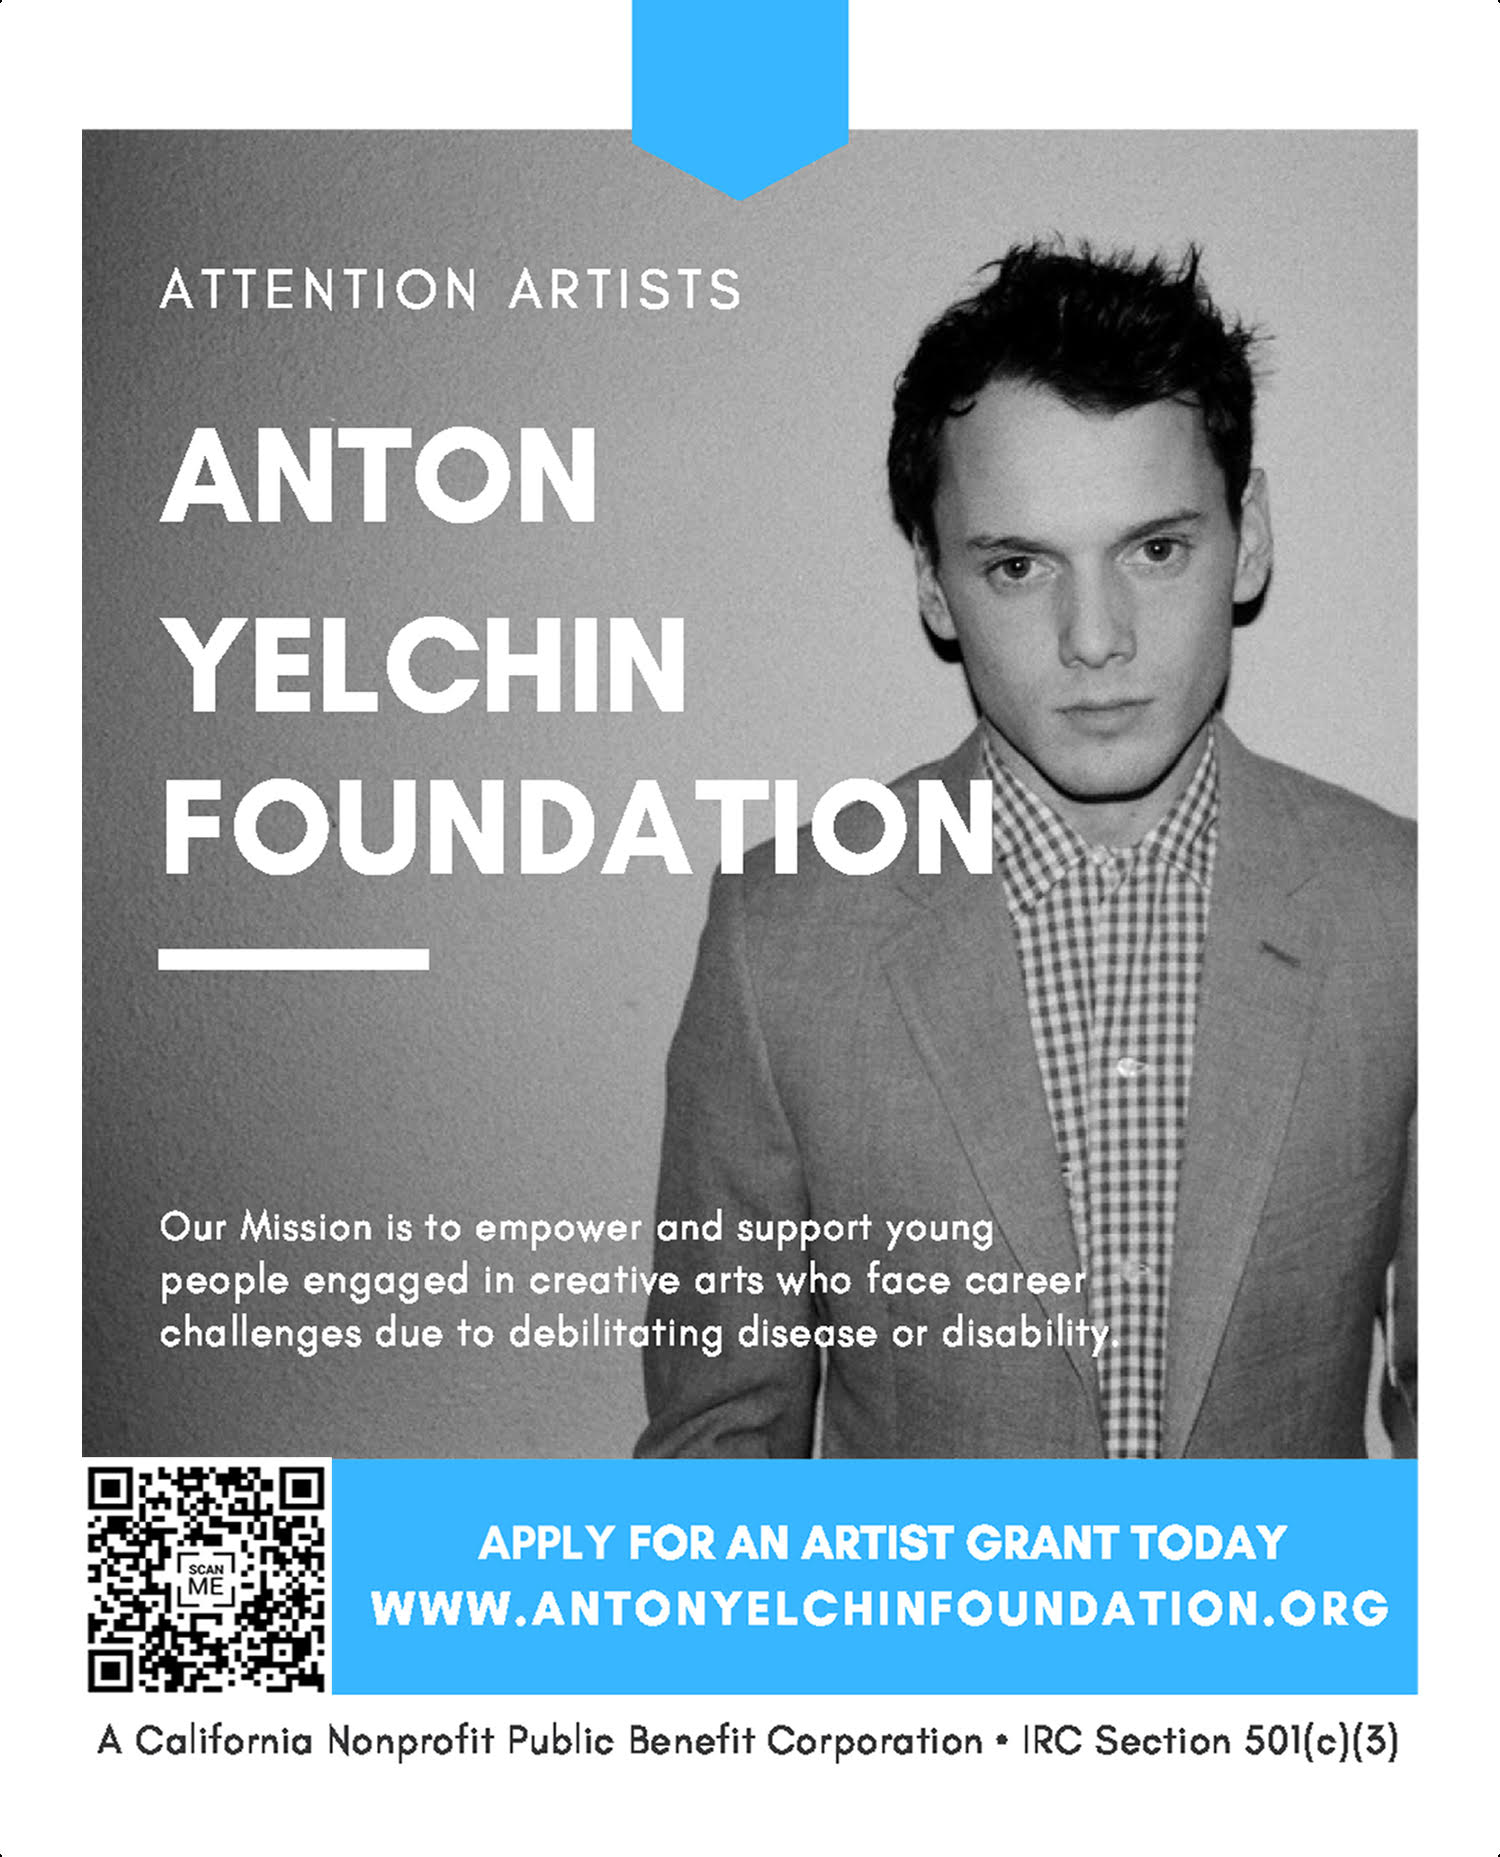 Anton Yelchin Foundation